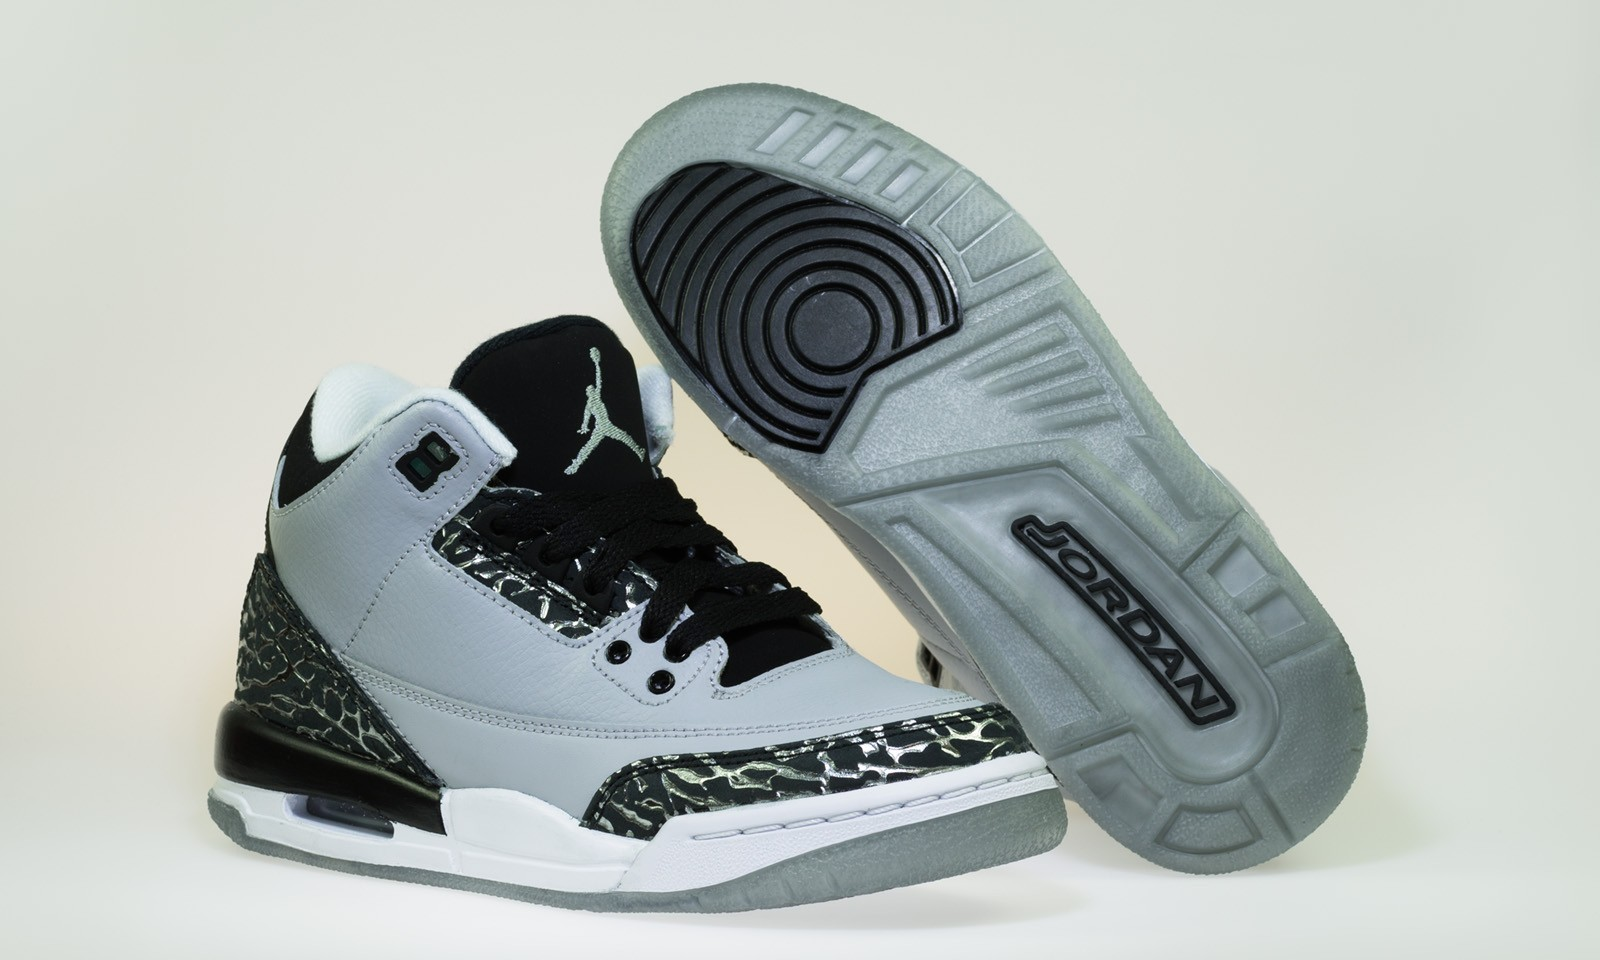 Air Jordan 3(III) Retro BG (Boys' Grade School) - GS - Wolf Grey Metallic Silver Black Basketball Shoes 398614-004